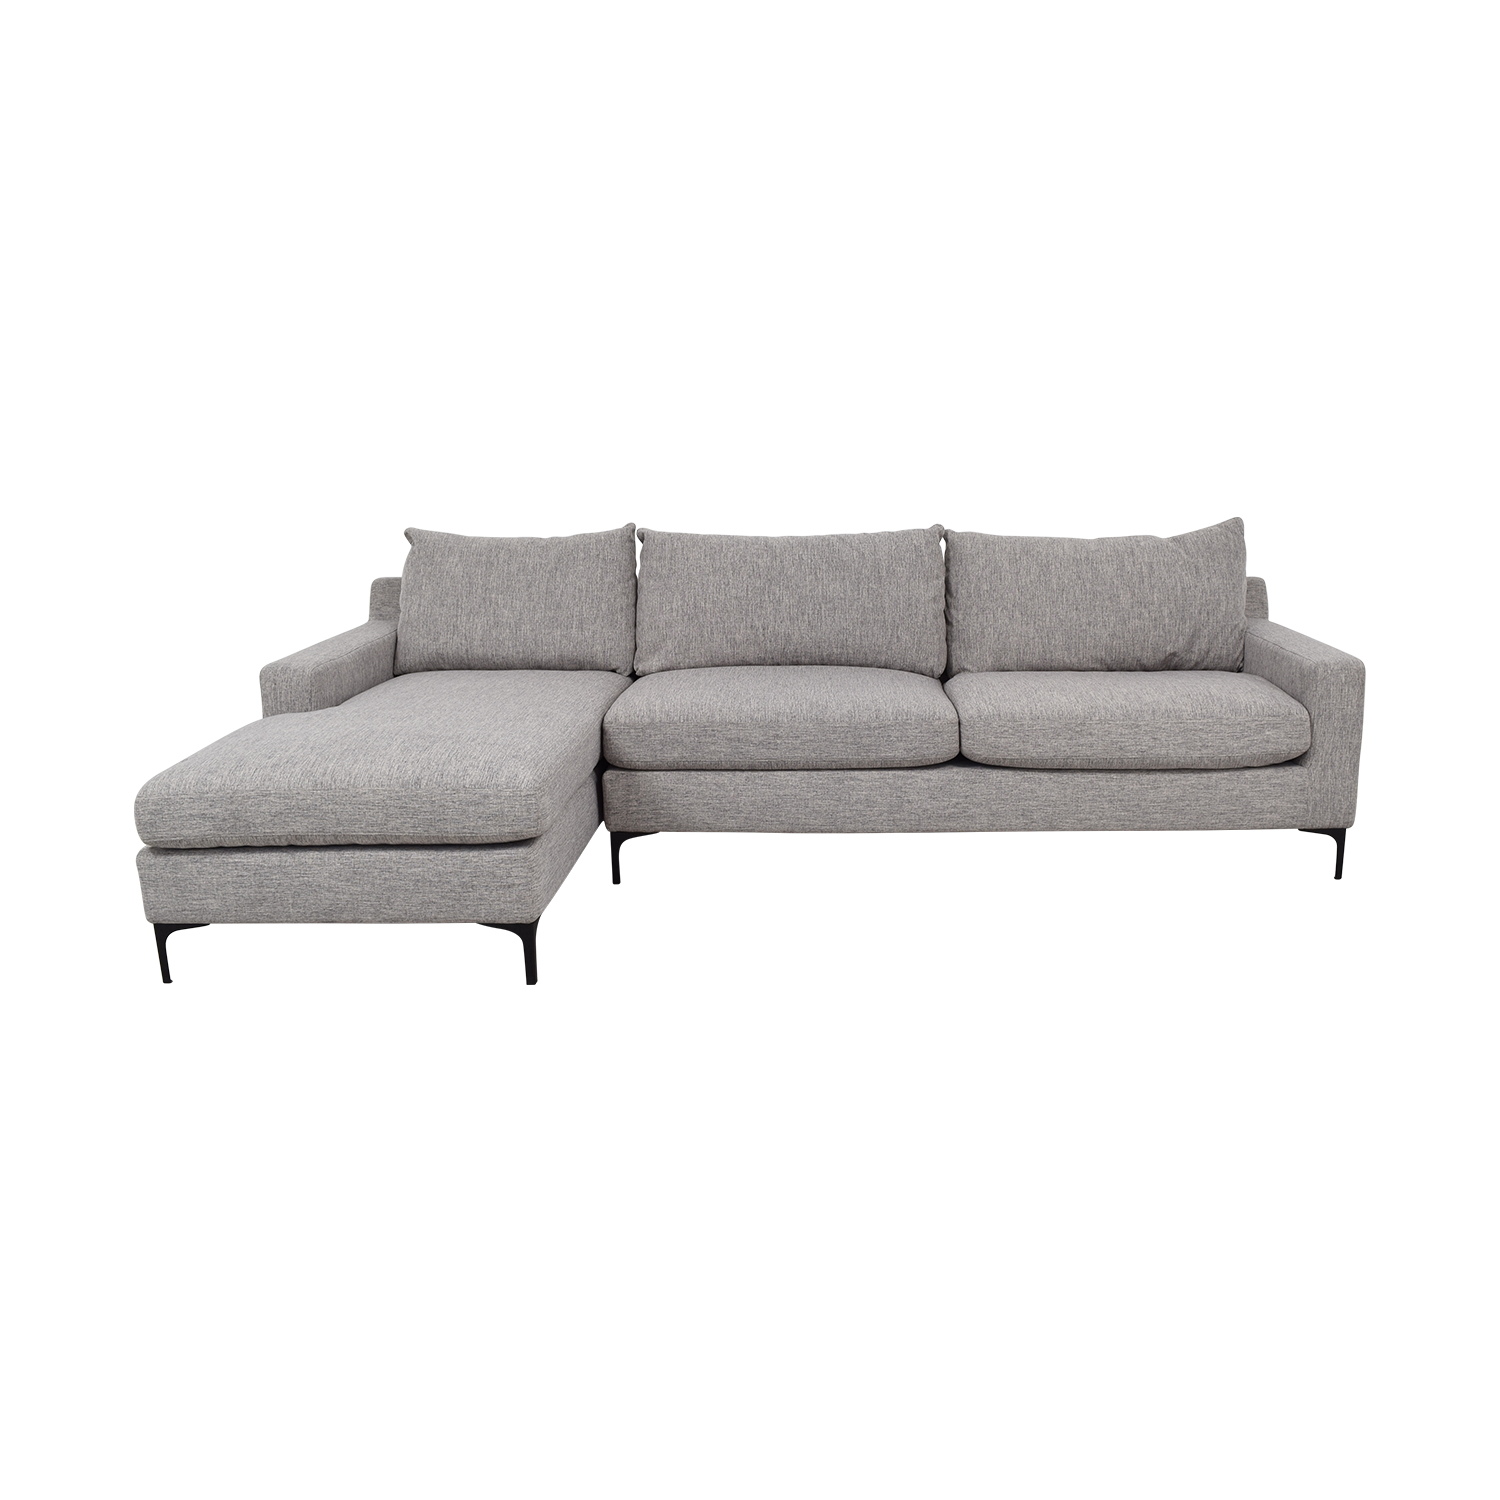 64% OFF - Sloan Grey Left Chaise Sectional / Sofas